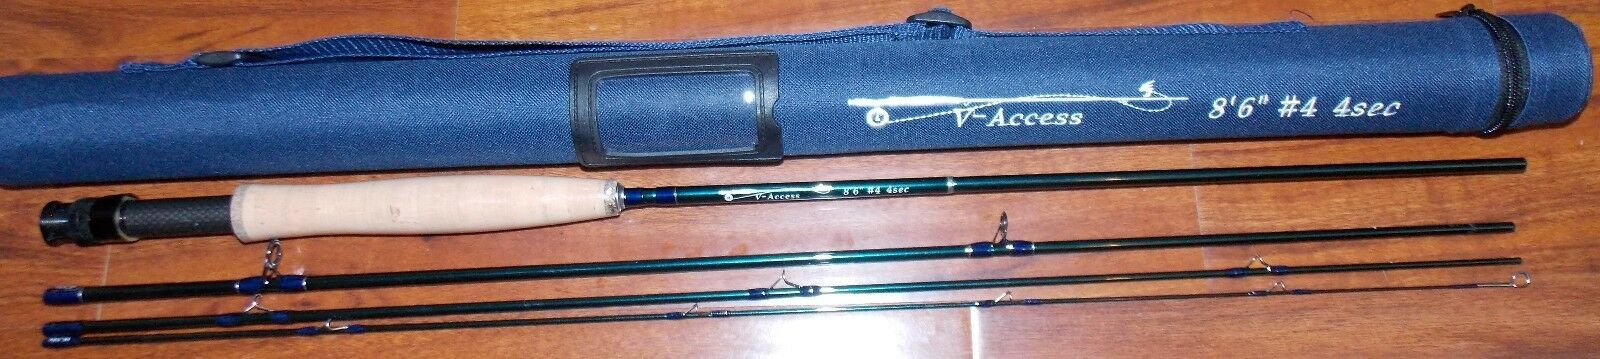 4 WT V-Access  Fly Fishing Rod  8 1 2 ft  4 Sec. with Tube  FREE 3 DAY SHIPPING